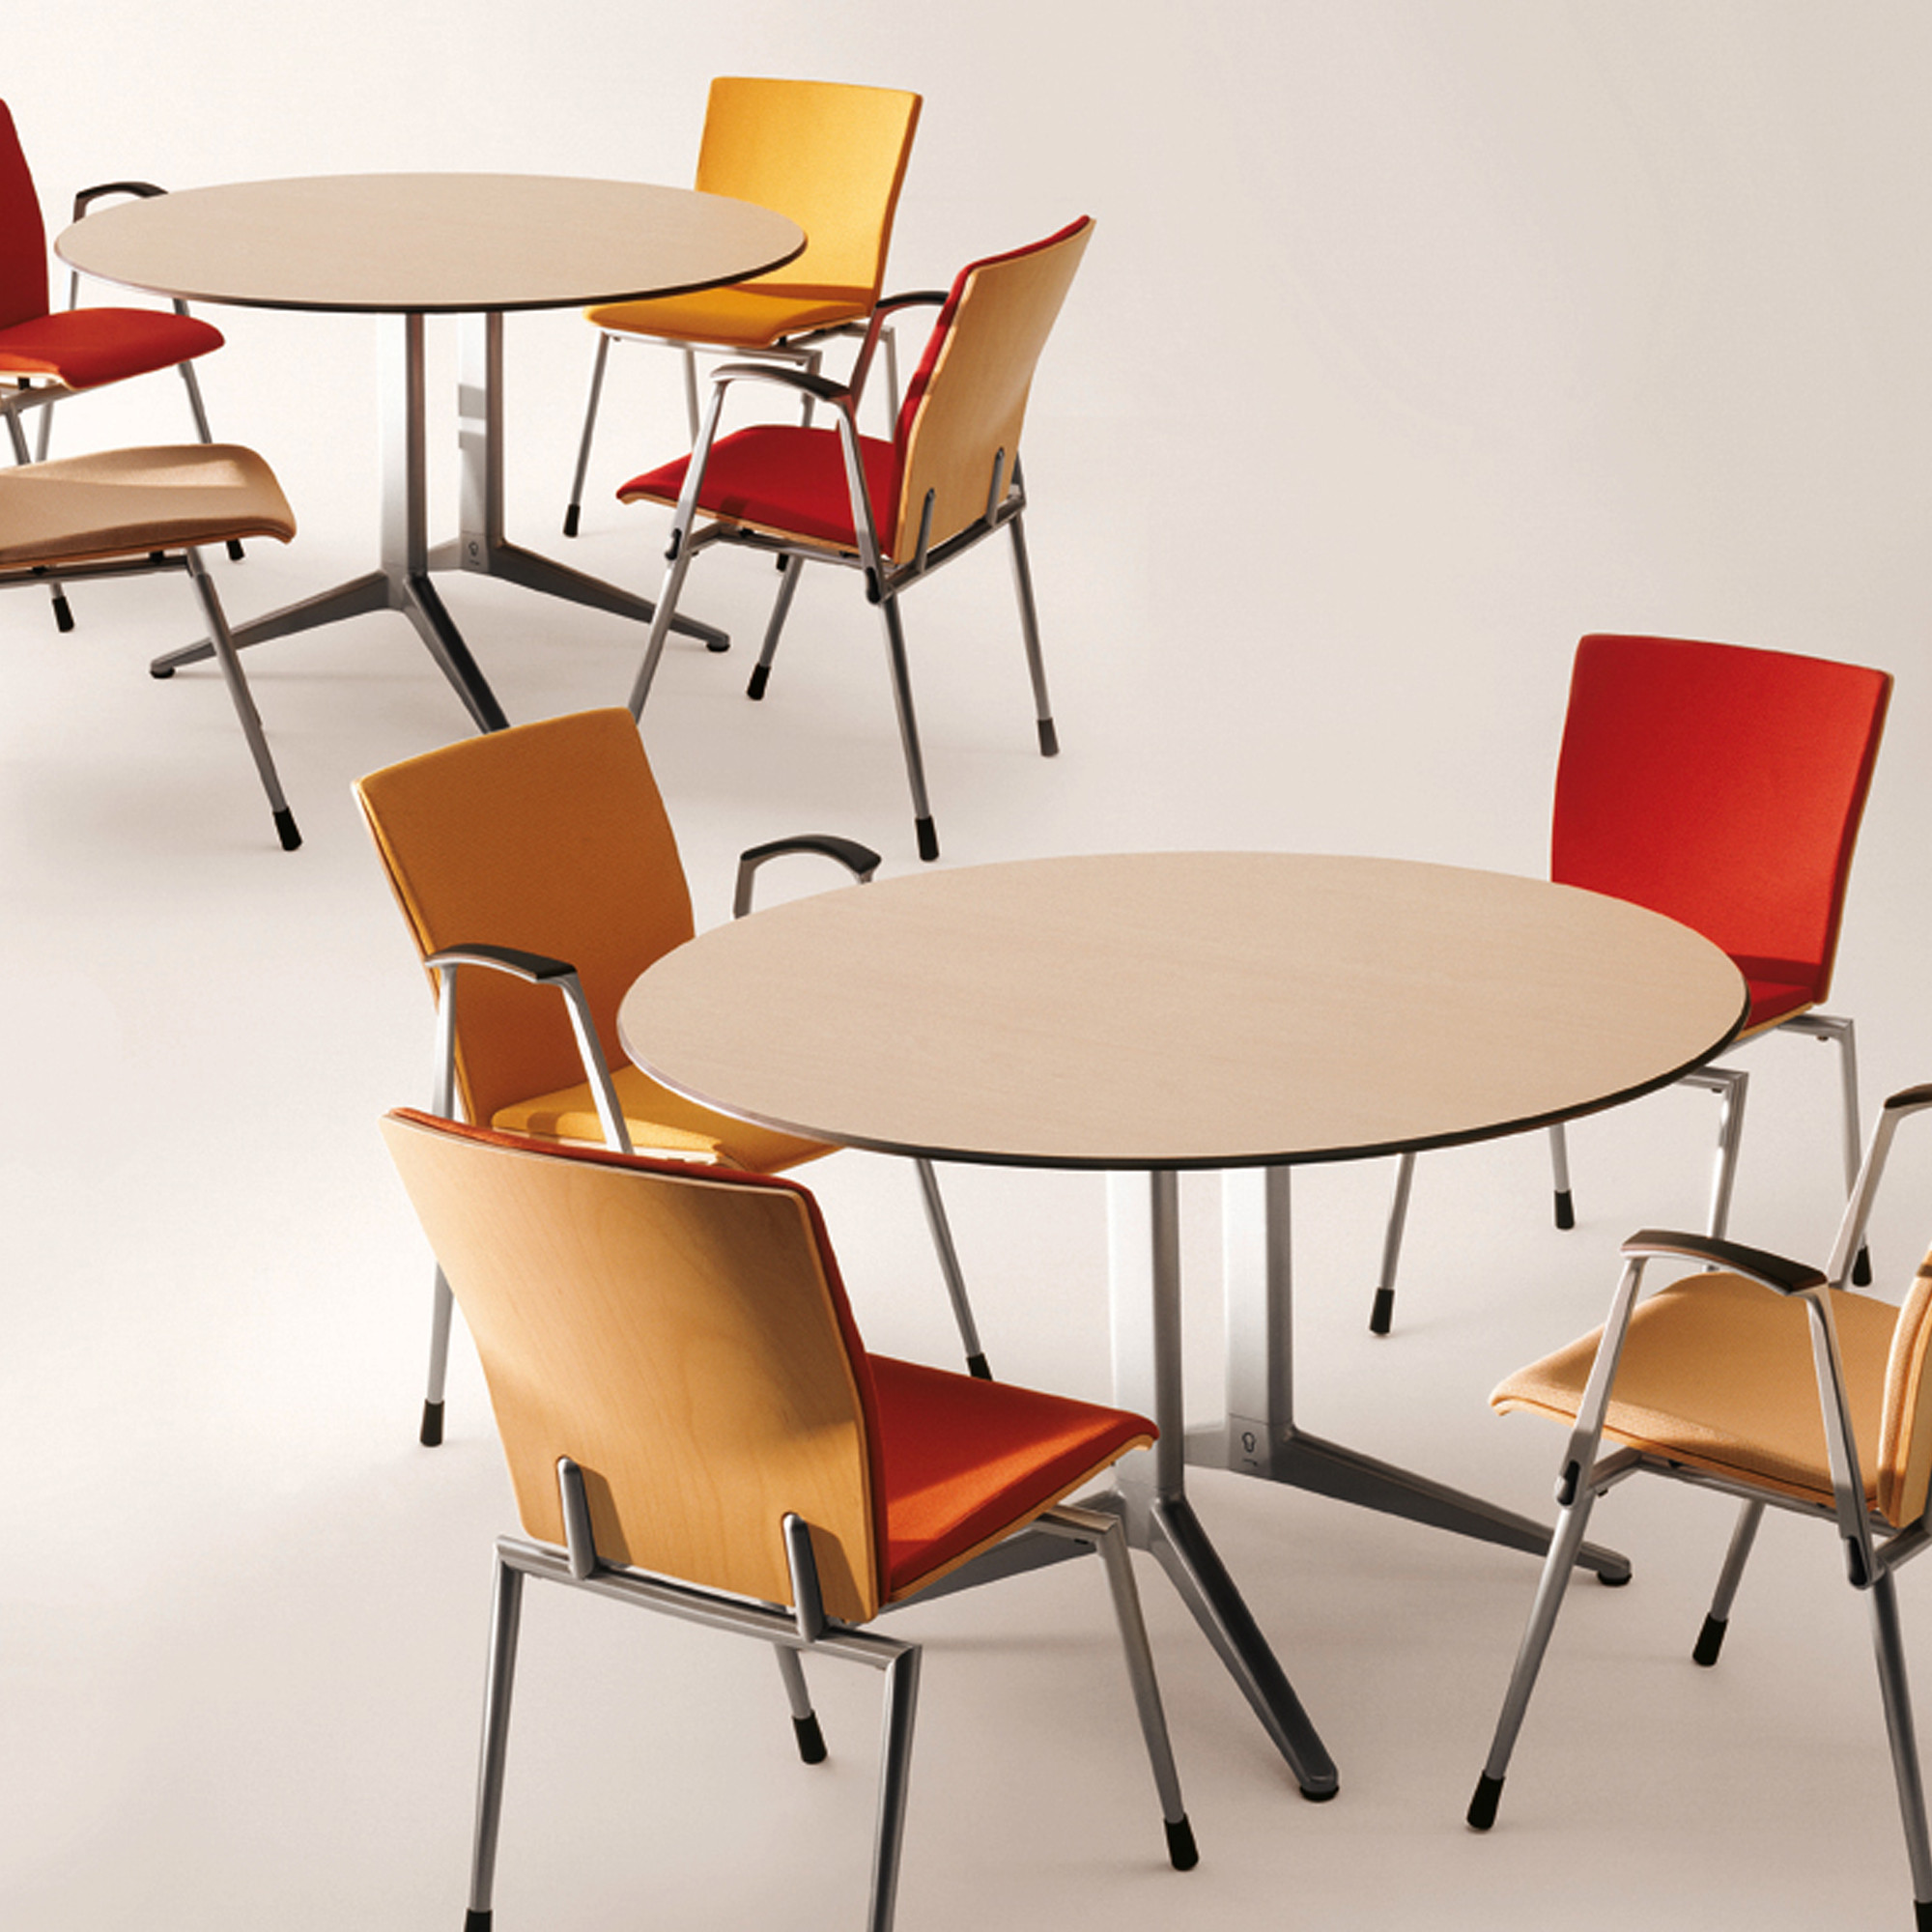 Ahrend 330 Breakout Chairs